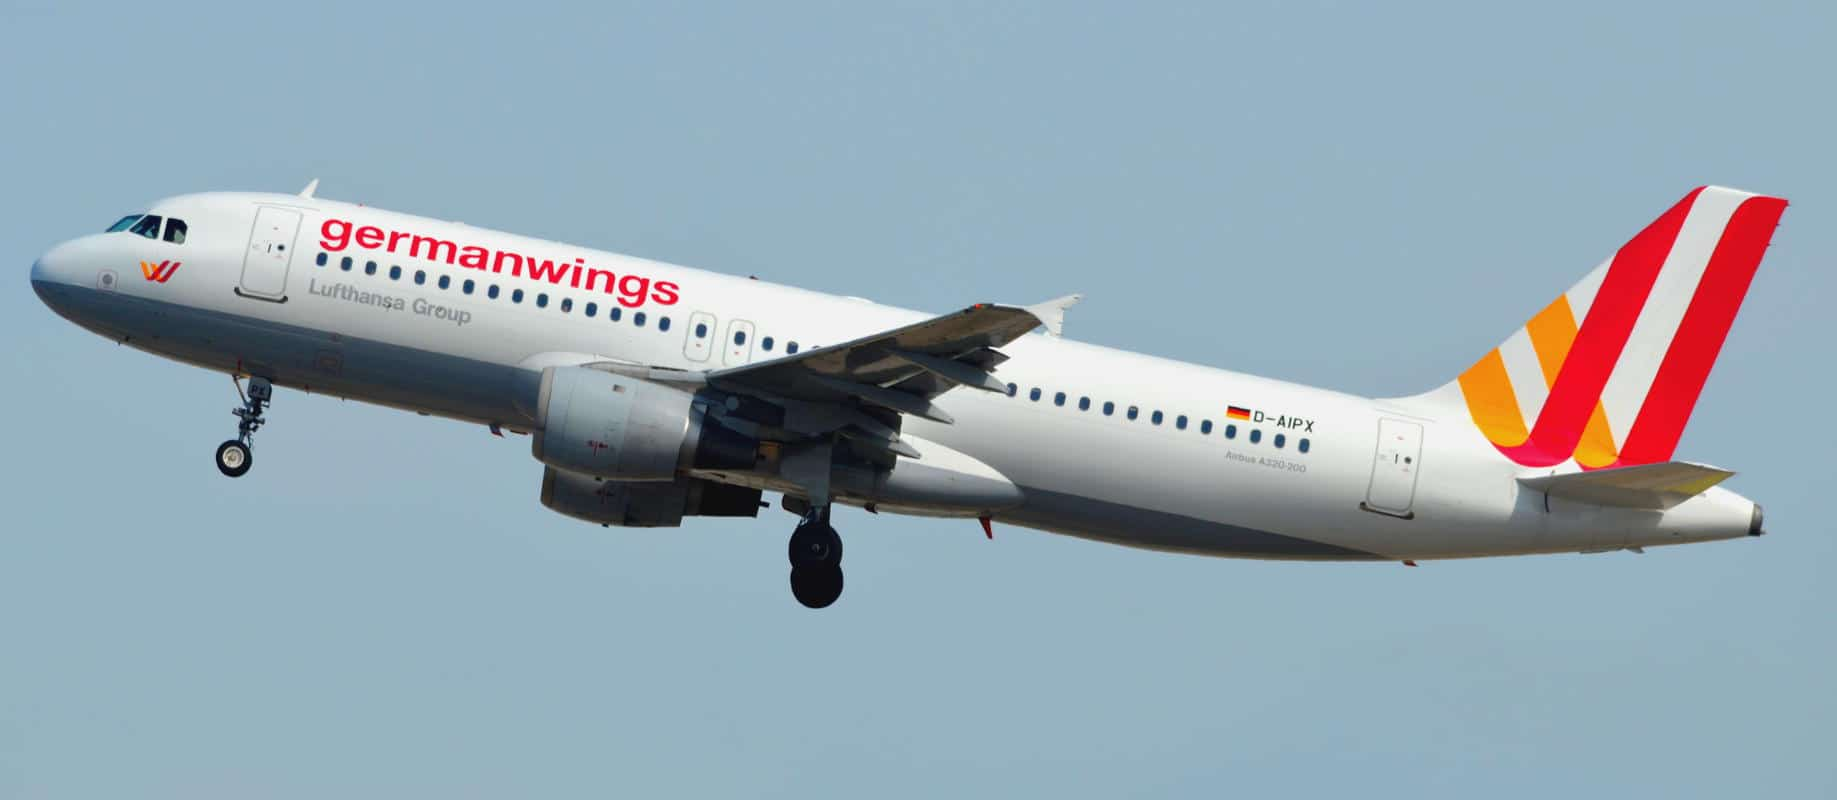 The Airbus aircraft involved in the Germanwings tragedy a year earlier